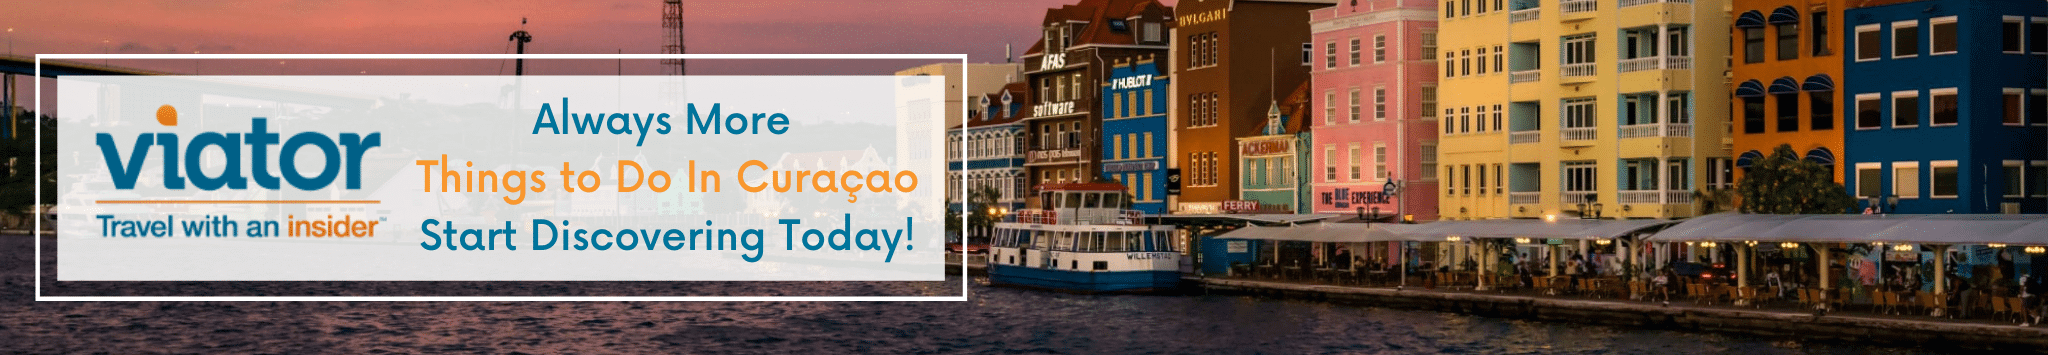 Explore More Things to Do In Curaçao